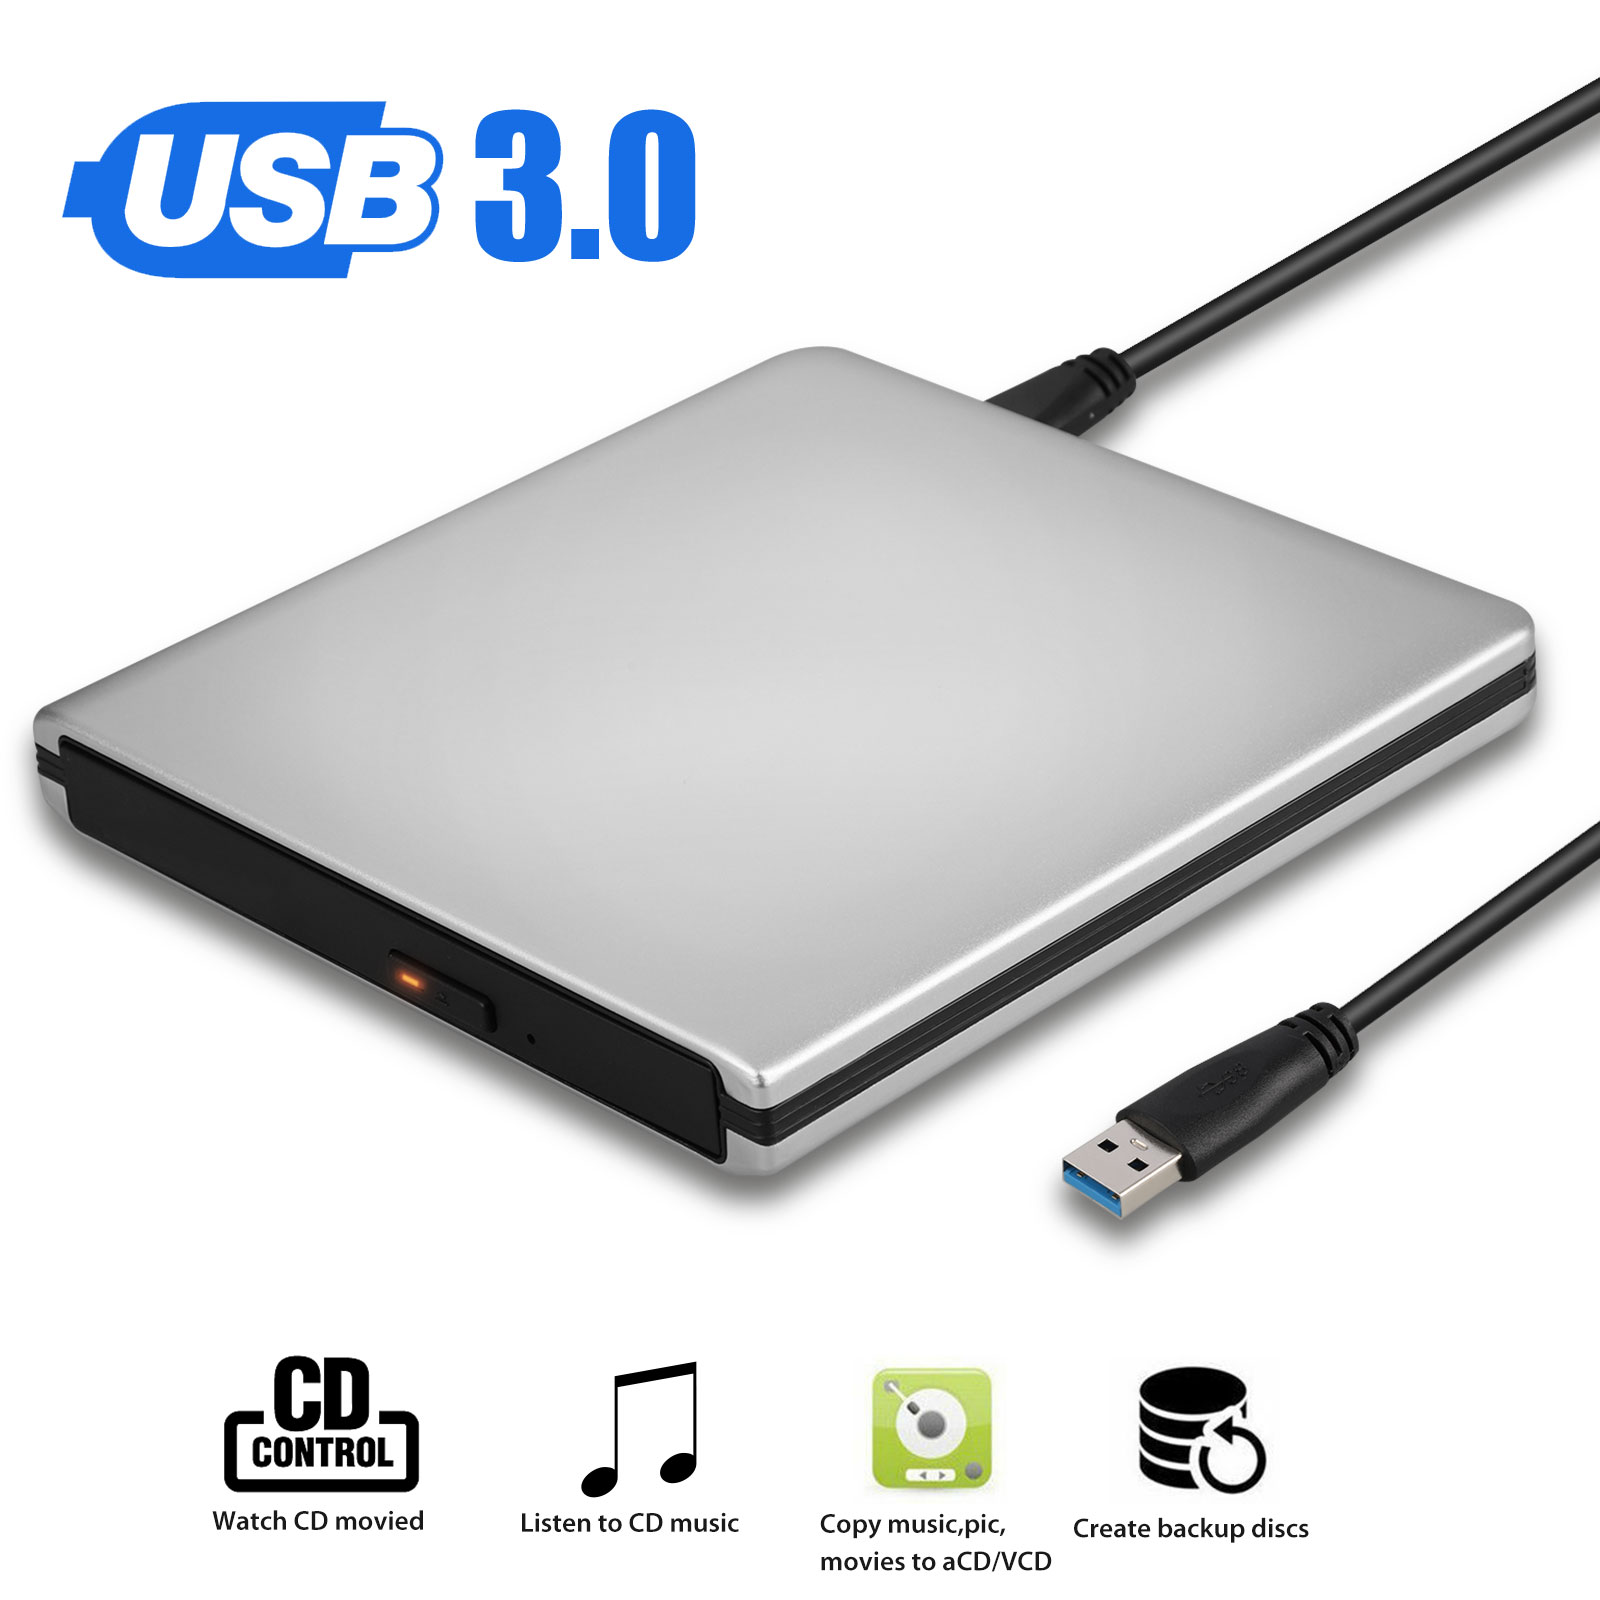 External CD/DVD Drive,USB 3.0 DVD +/-RW Superdrive CD Burner with High Speed Data Transfer Compatible for MacBook Laptop Desktop PC Windows10 /8/7 /XP Linux Mac OS